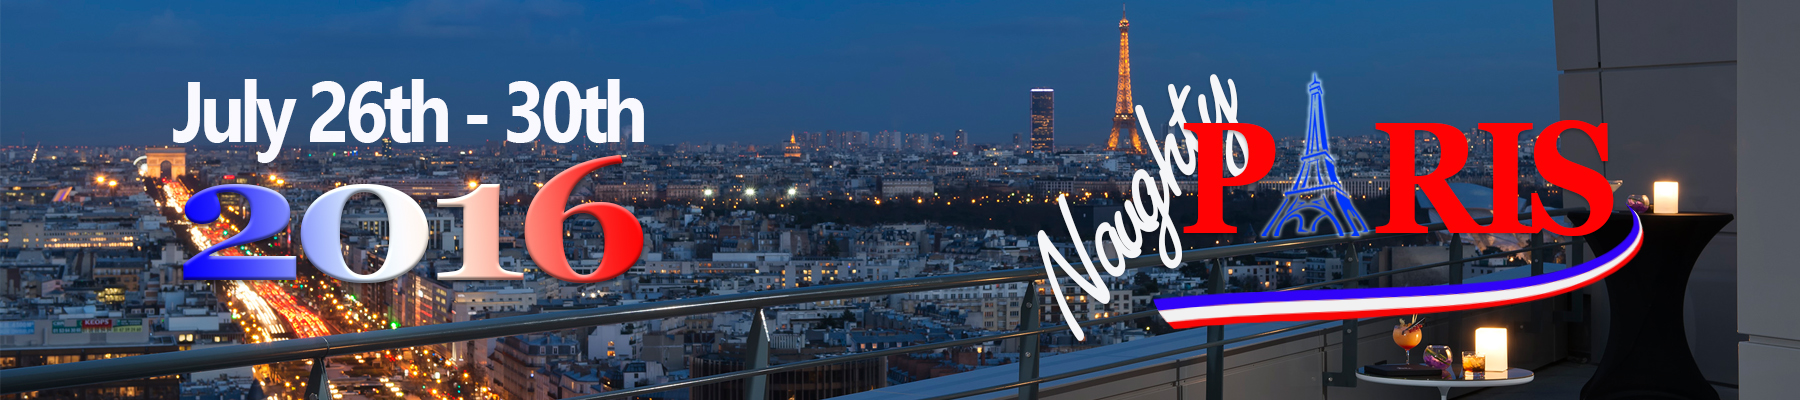 llvclub paris, paris lifestyle, swingers paris, libertines paris,luxury events